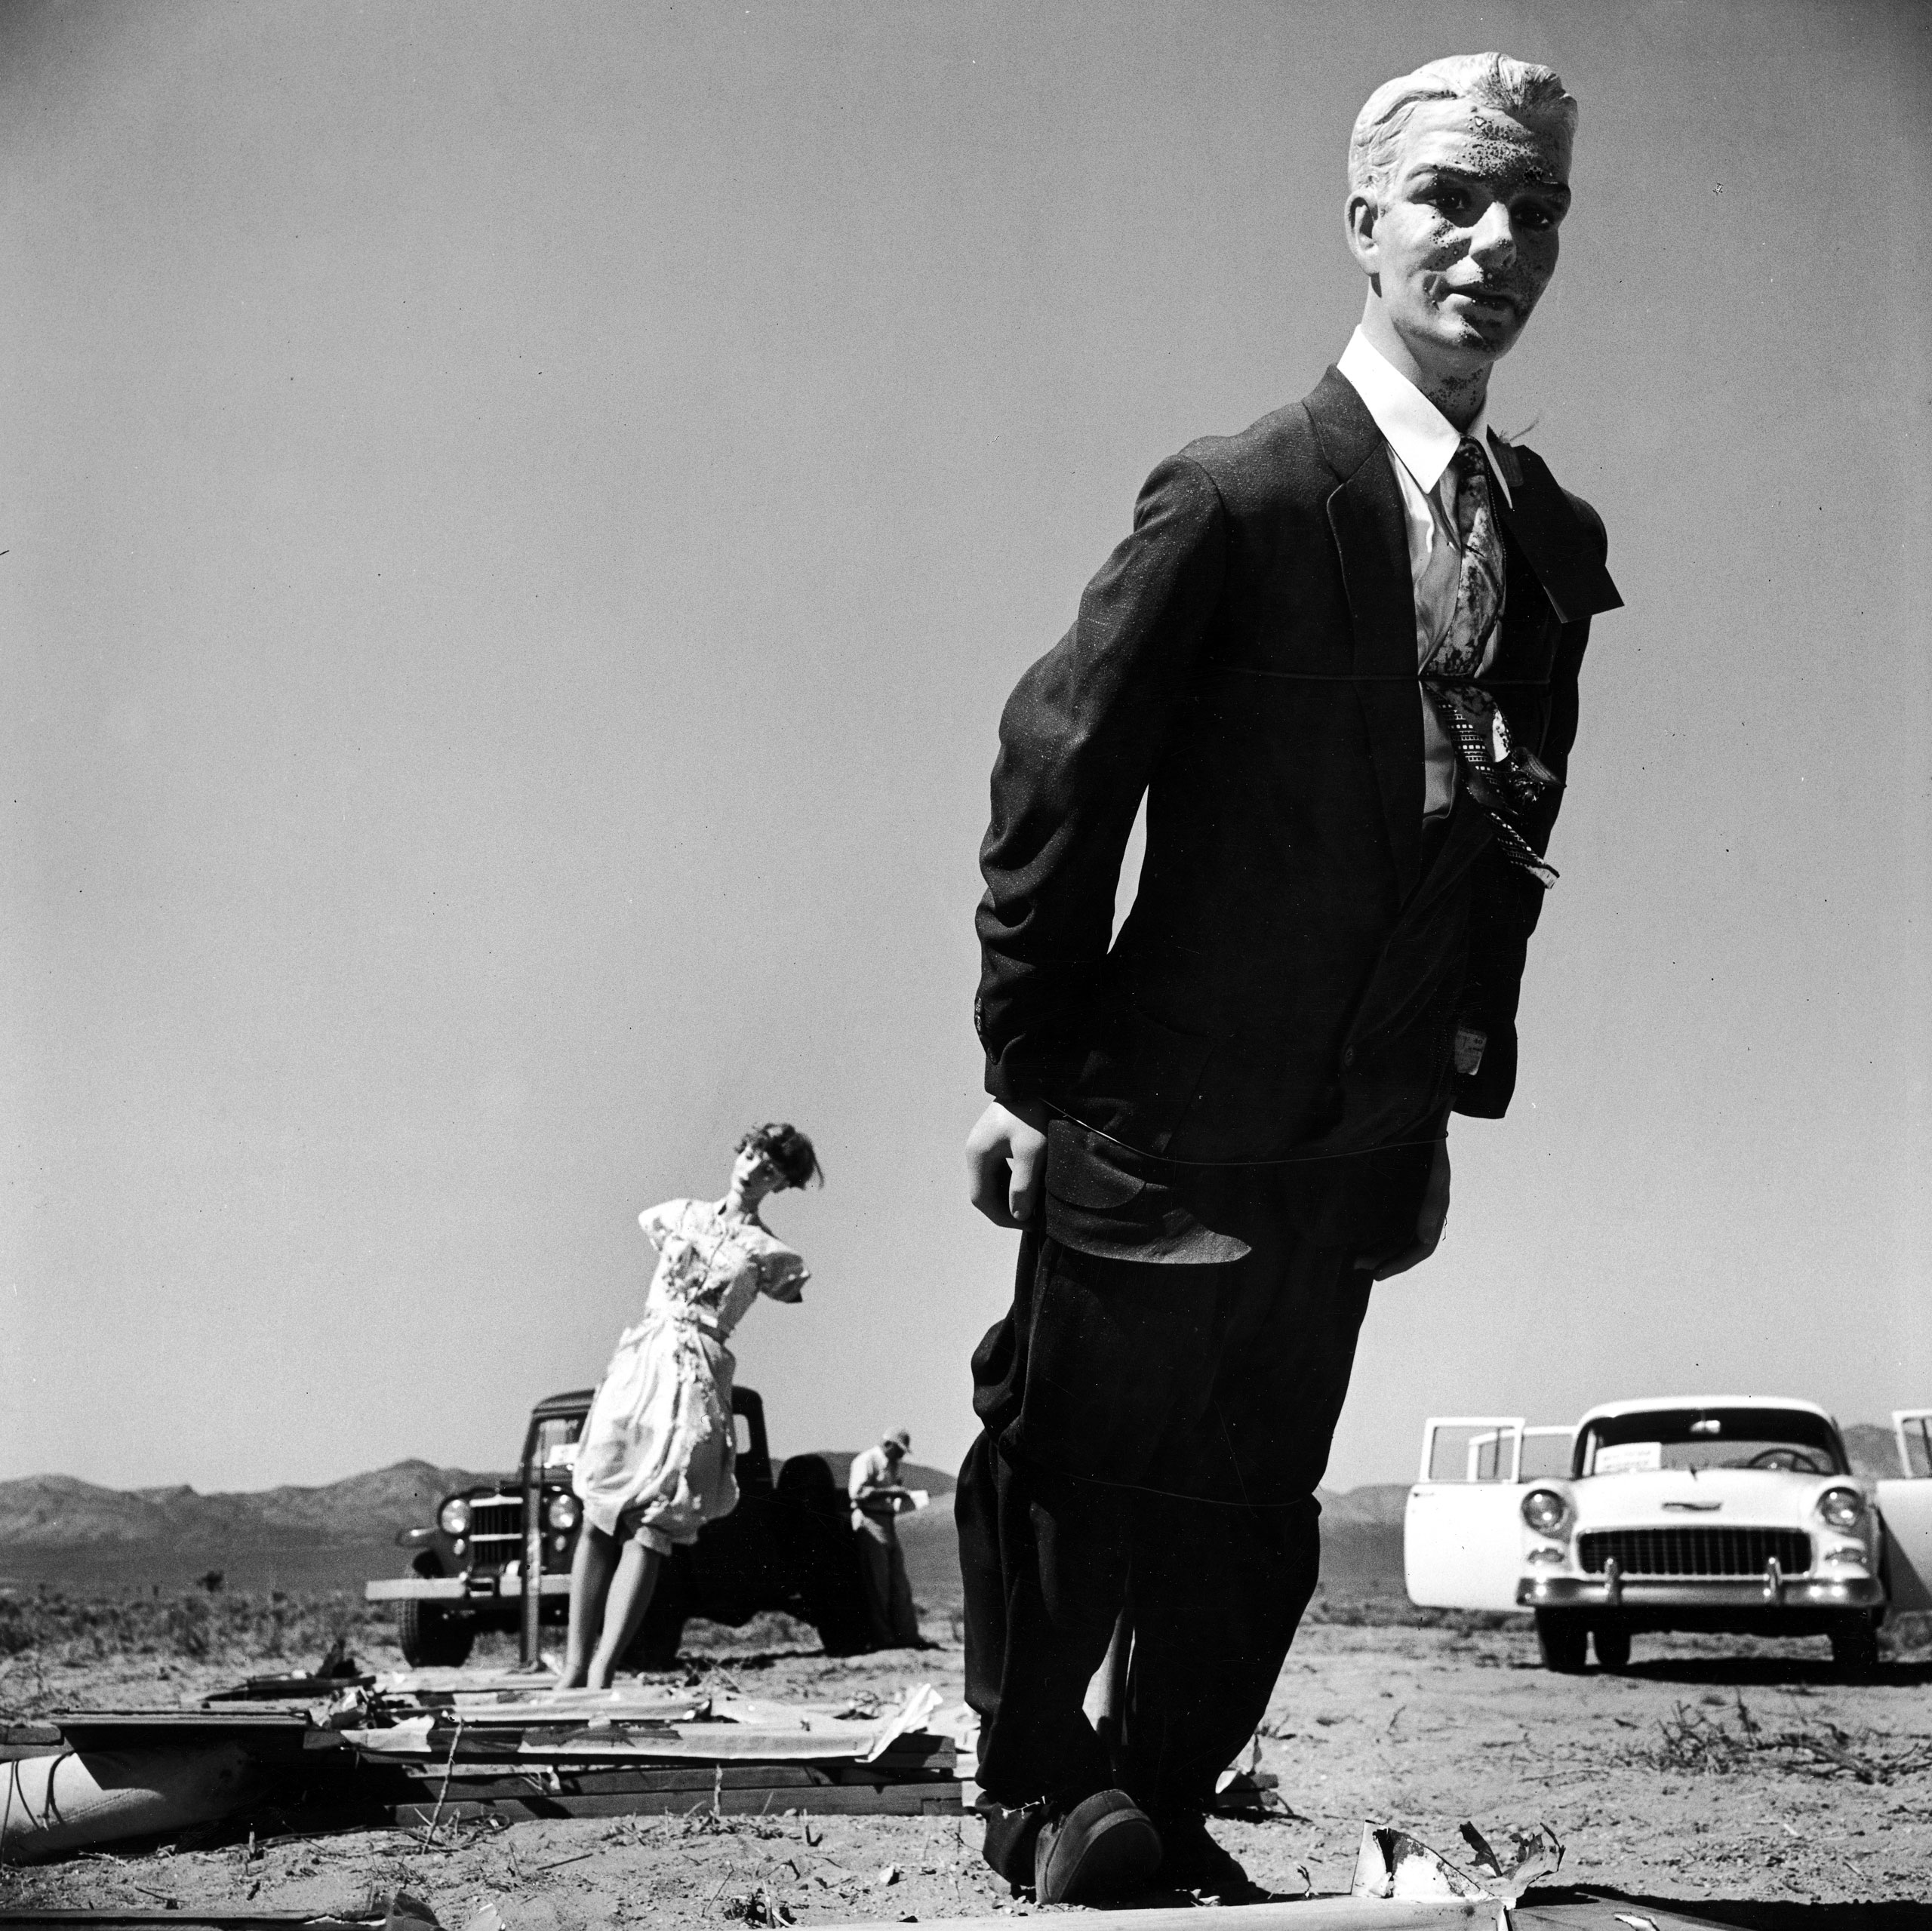 LIFE magazine pictures made after an atomic weapon test, Nevada, 1955.